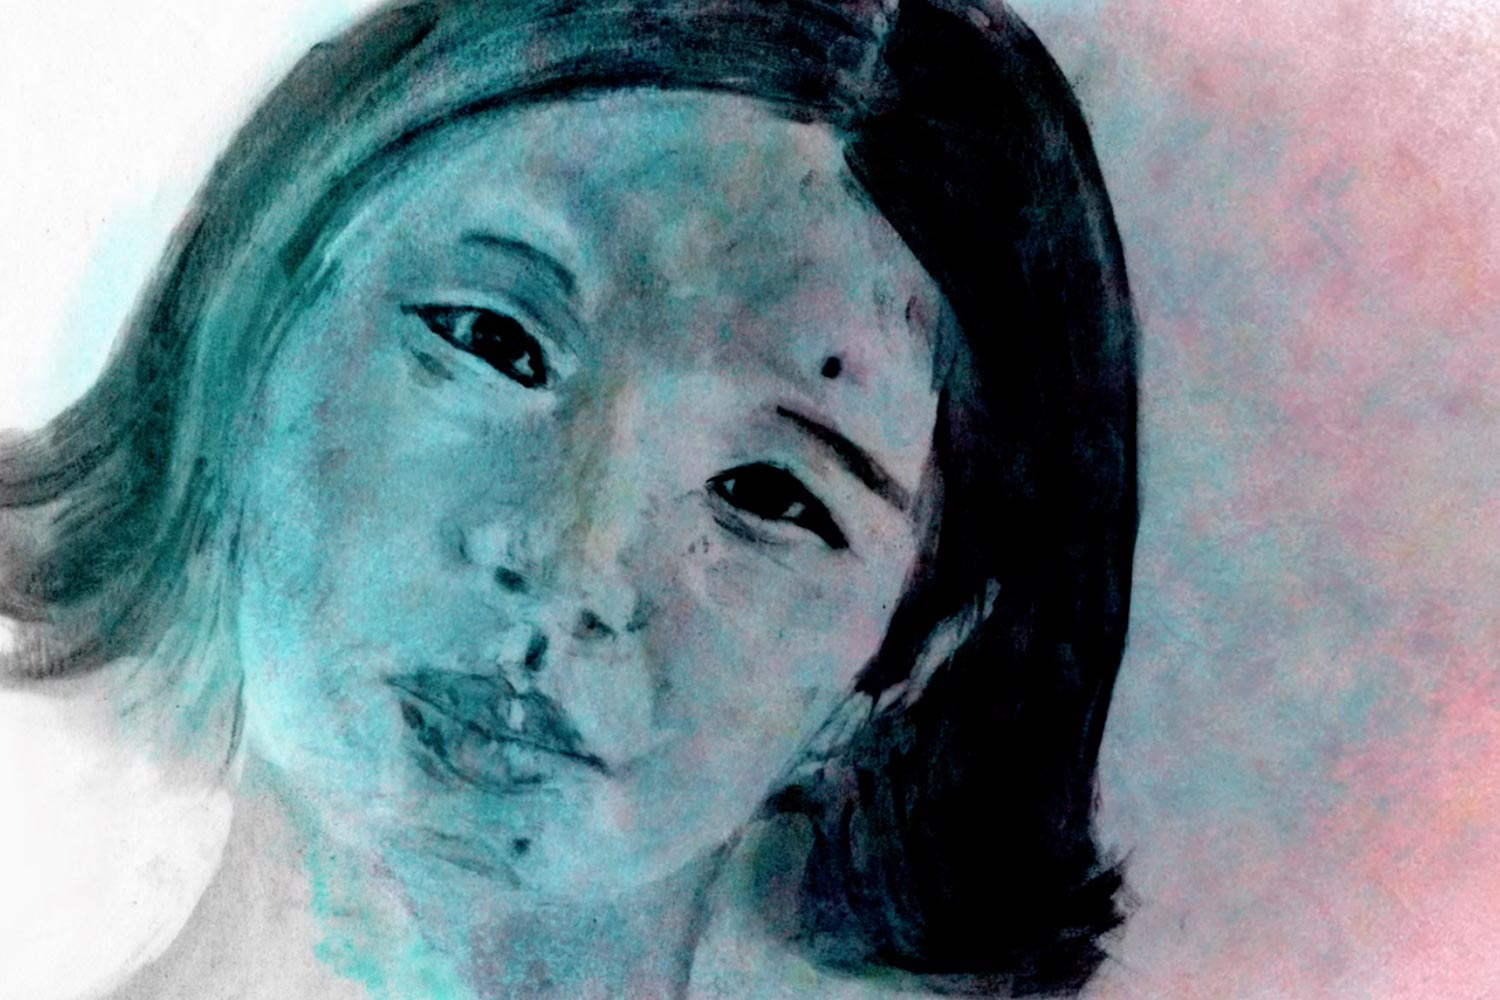 A portrait of Zeng Jinyan from 'Outcry and Whisper', a film byWen Hai and Zeng Jinyan; animation directed by Trish McAdam. Courtesy of Icarus Films